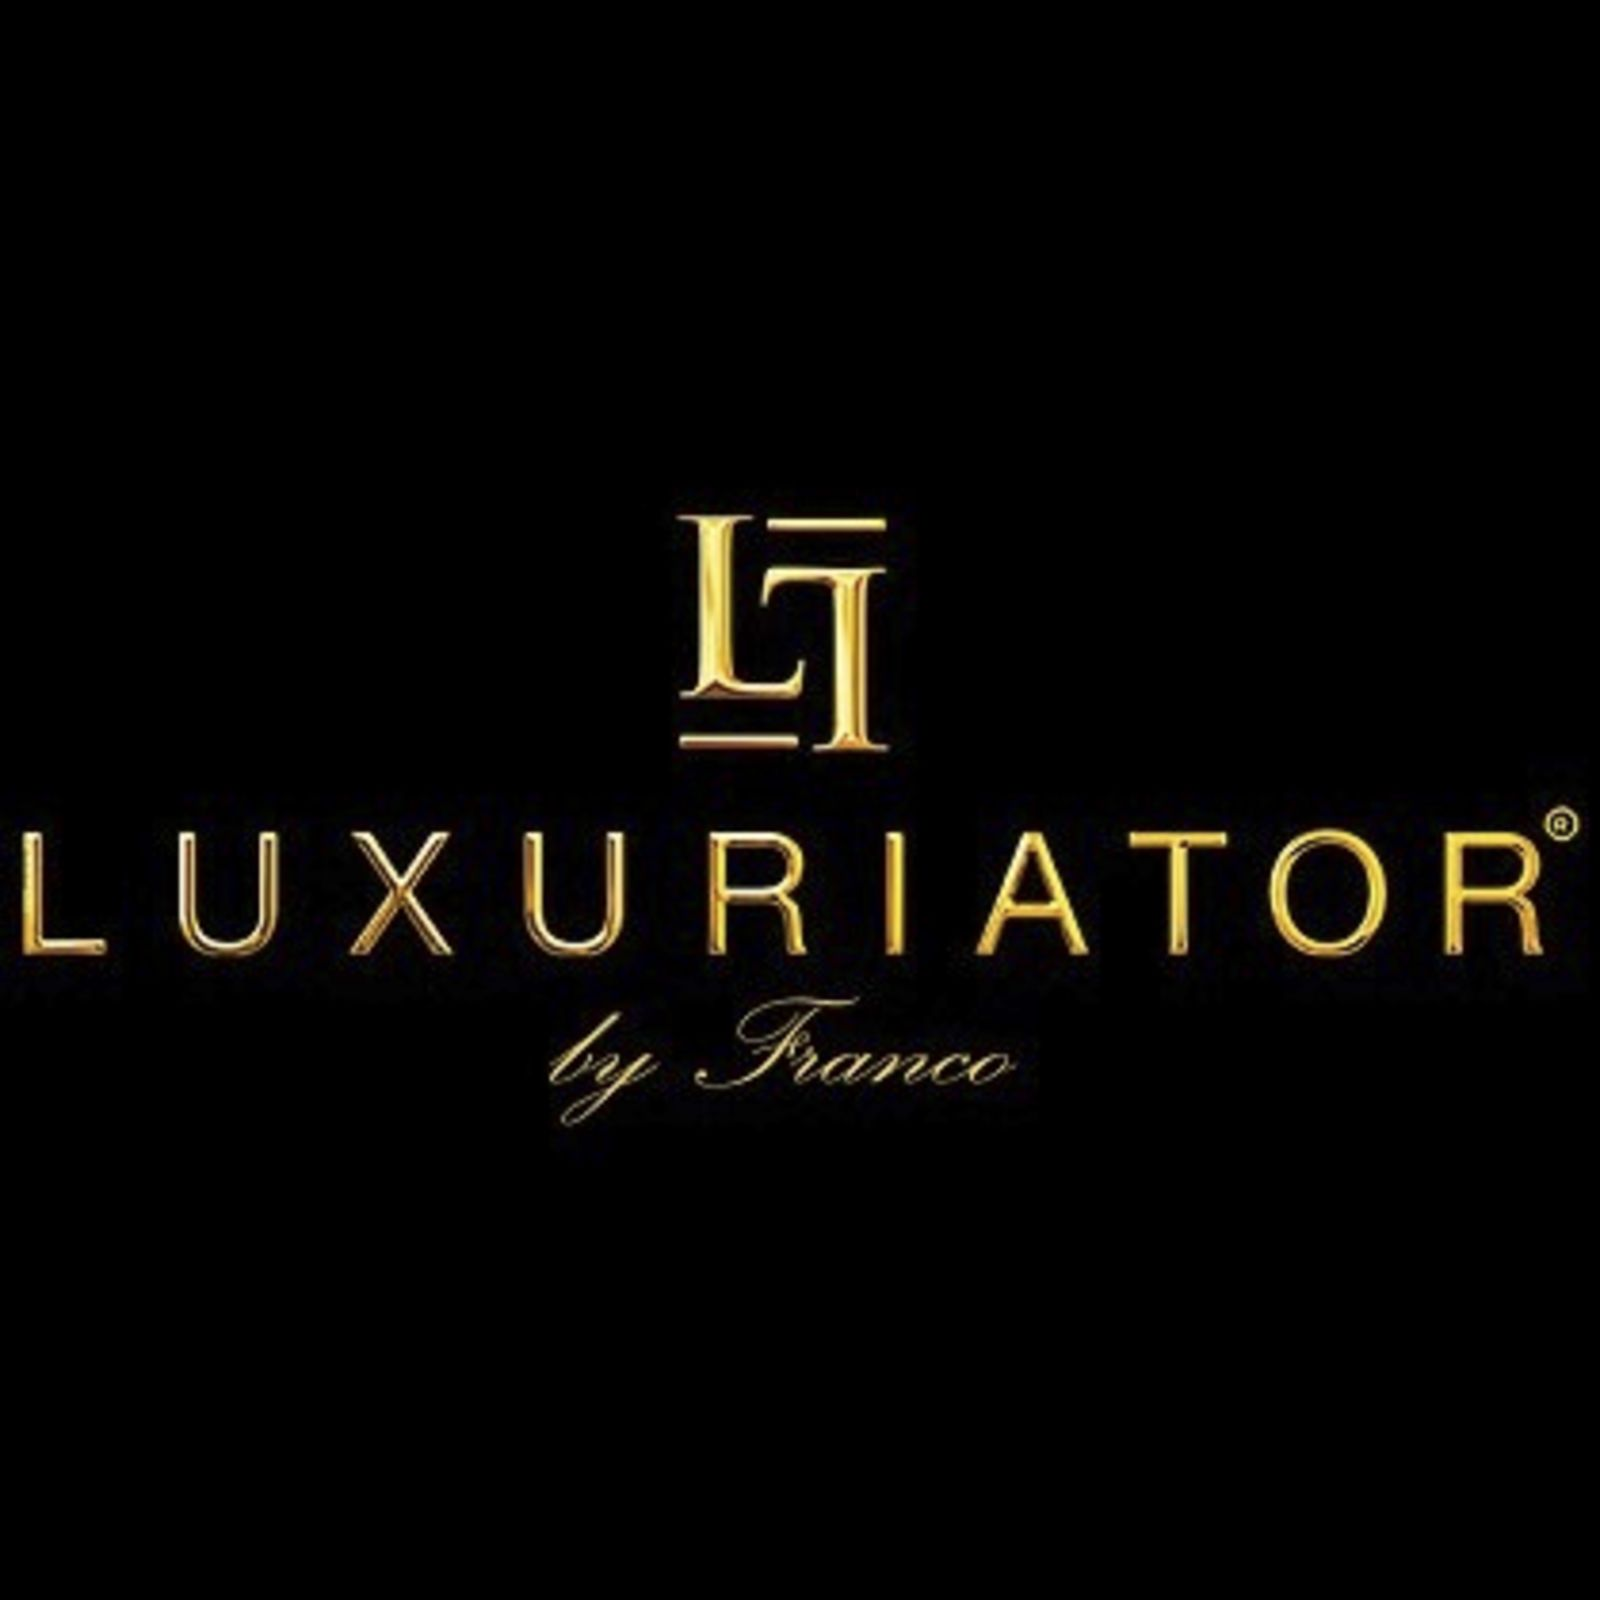 Luxuriator by Franco